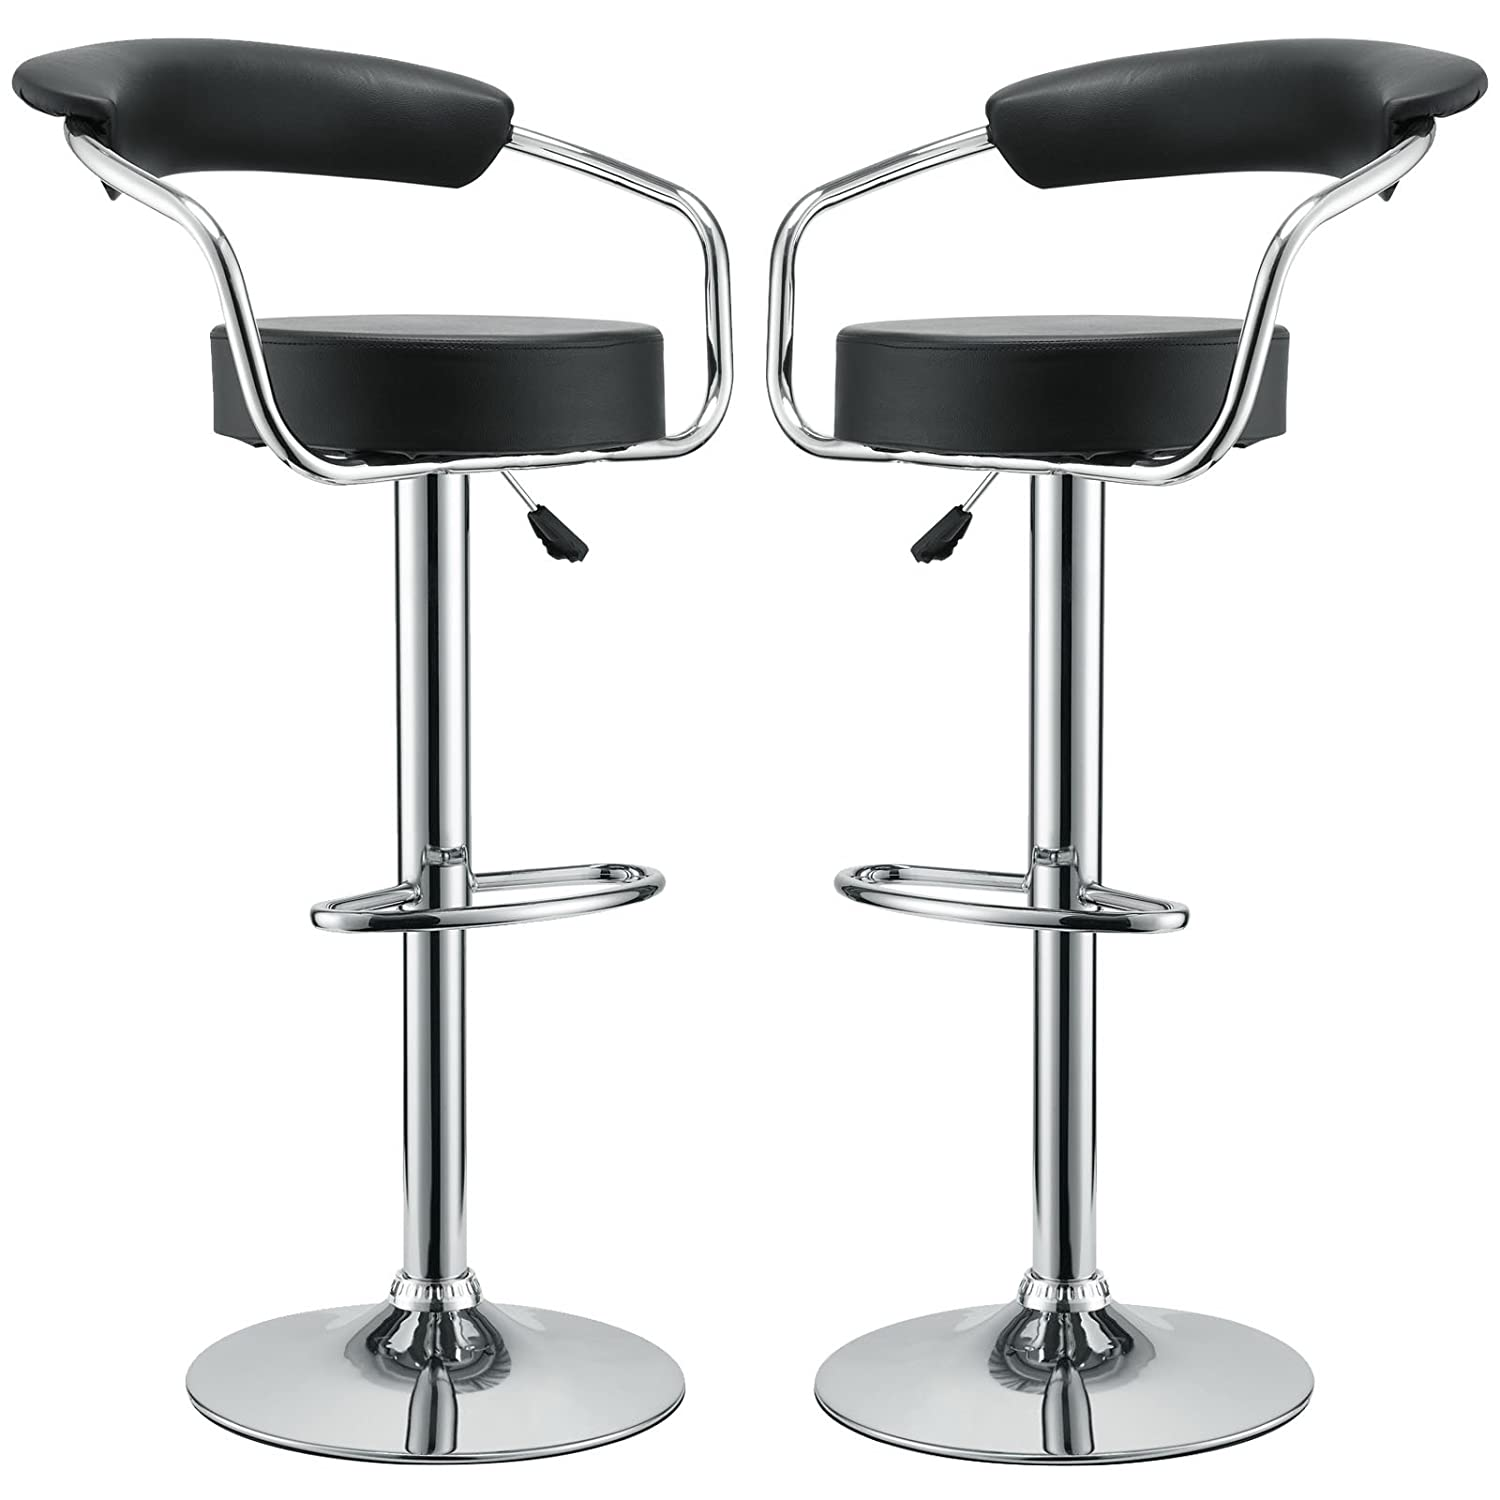 Amazoncom Modway Diner Retro Faux Leather Adjustable Bar Stools In